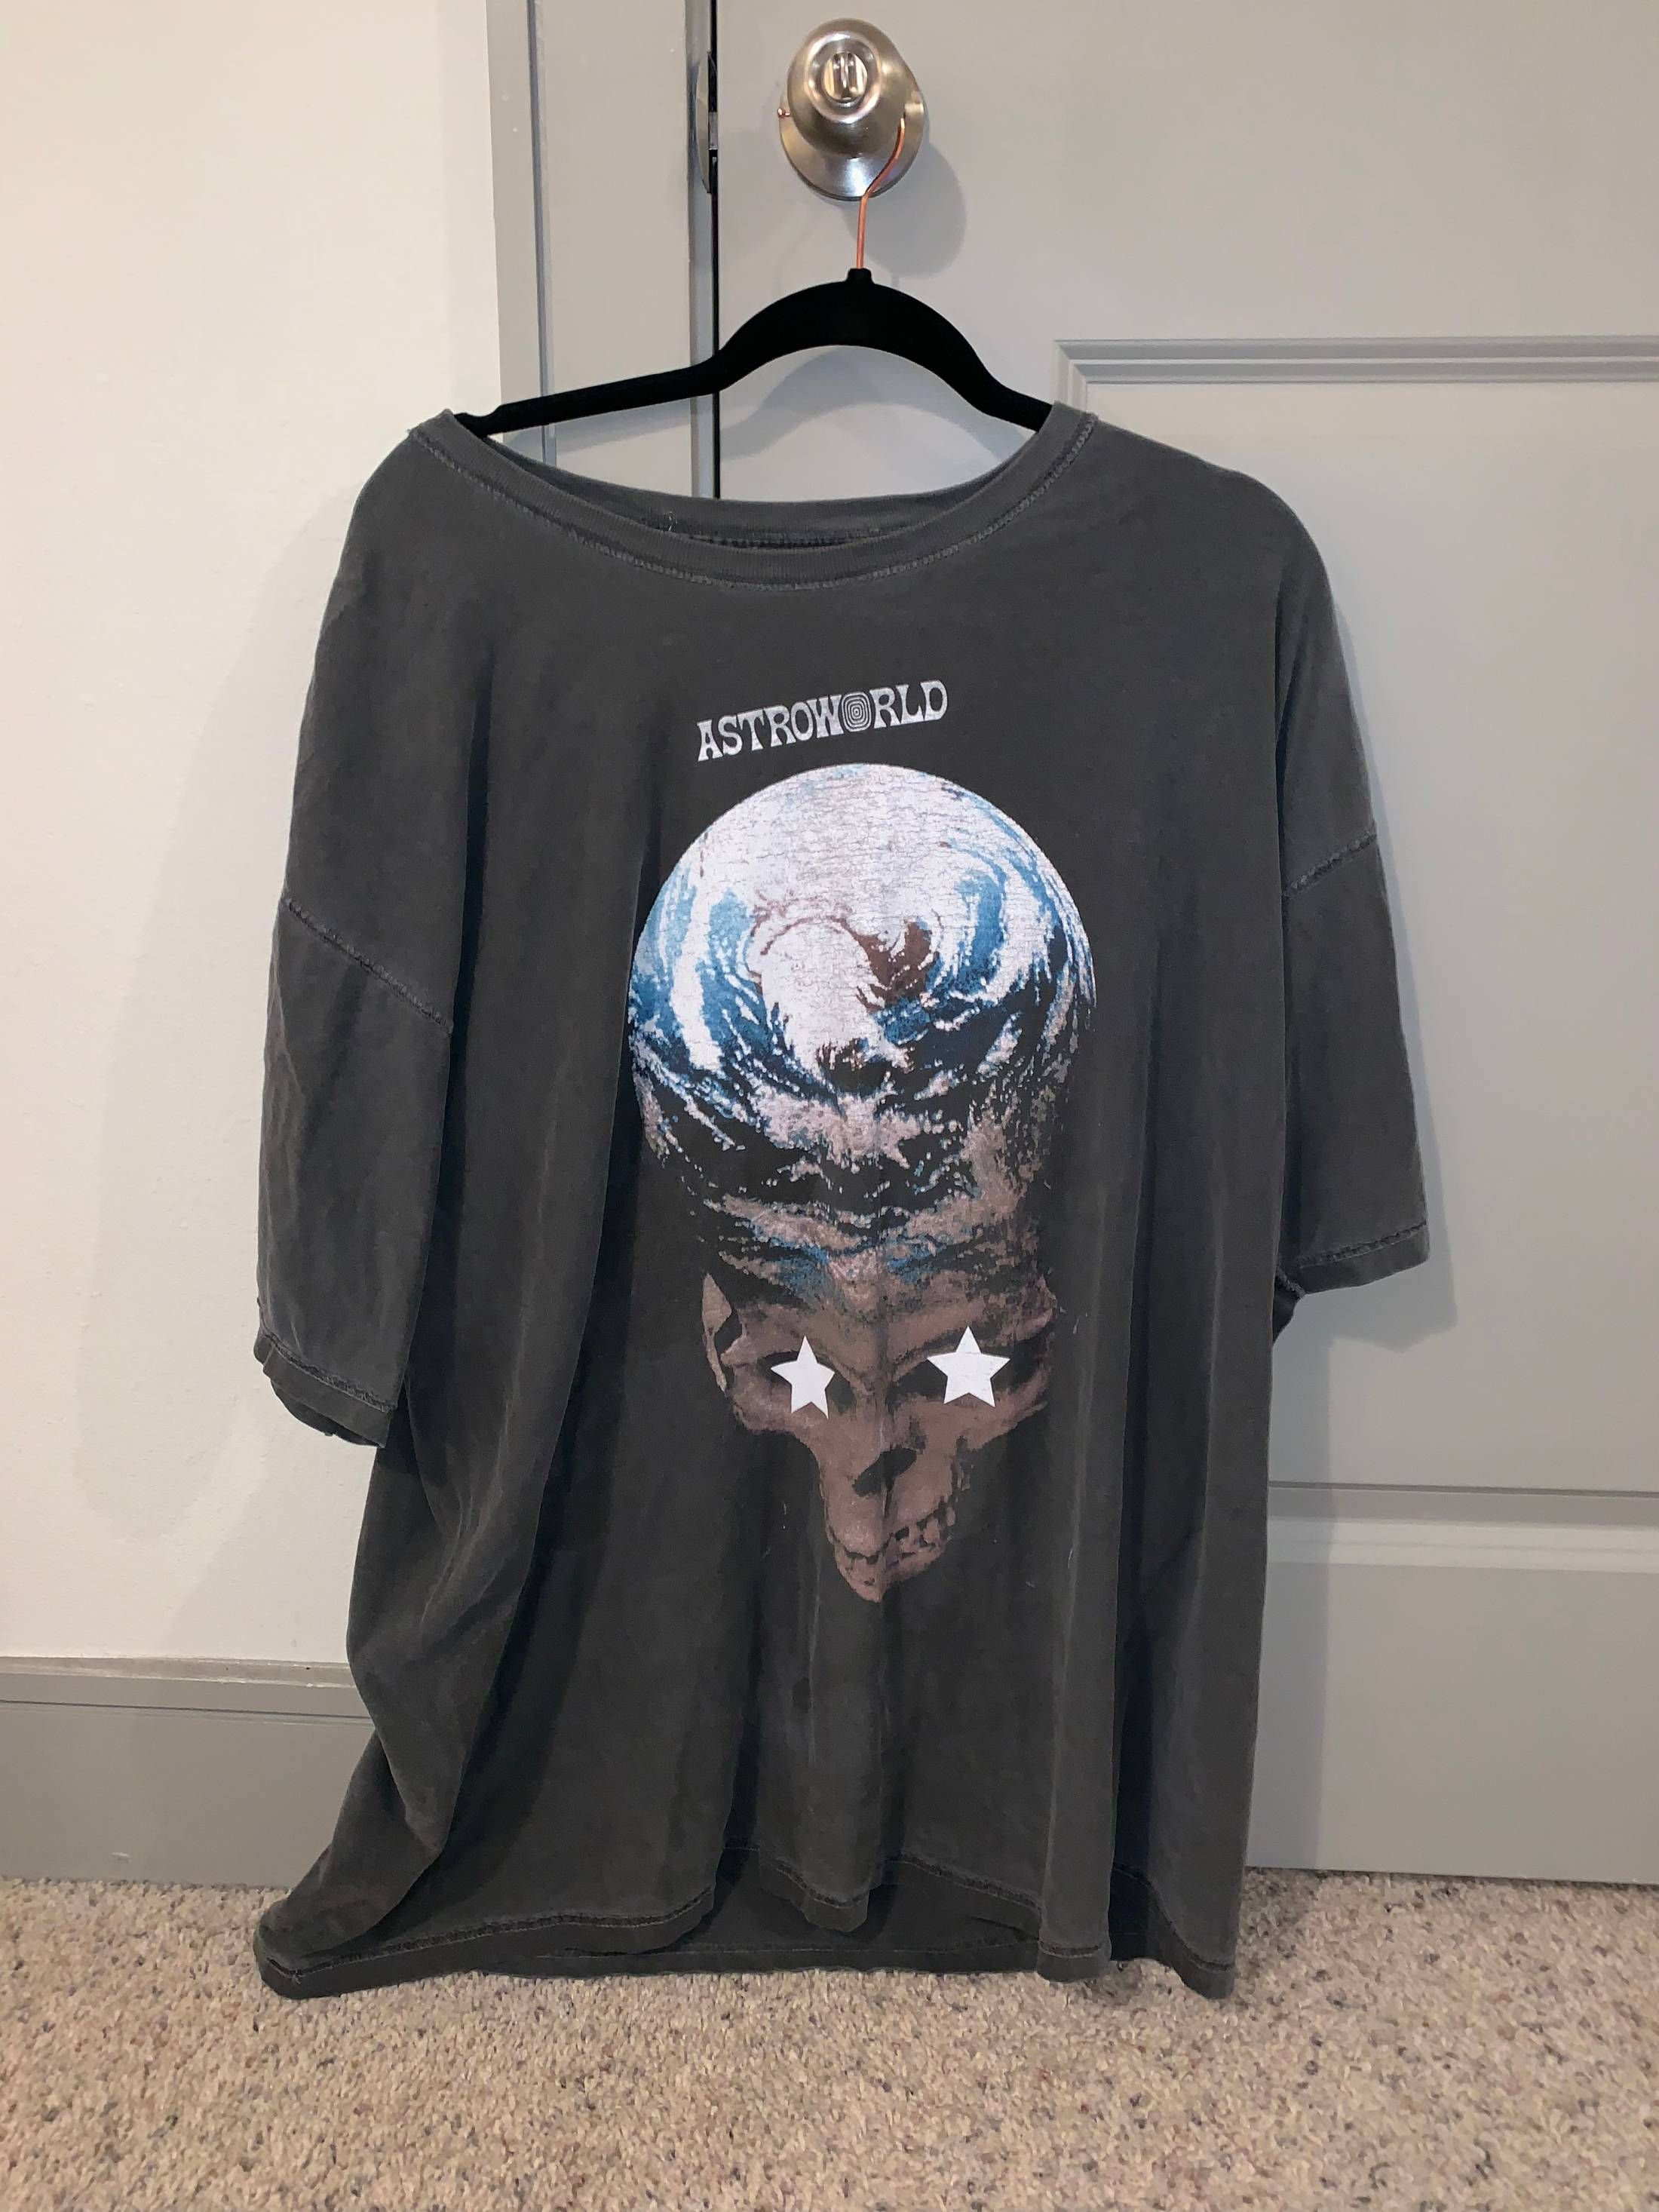 f2b6360ec45de Astroworld skull reversible | Fashion | Travis scott astroworld ...